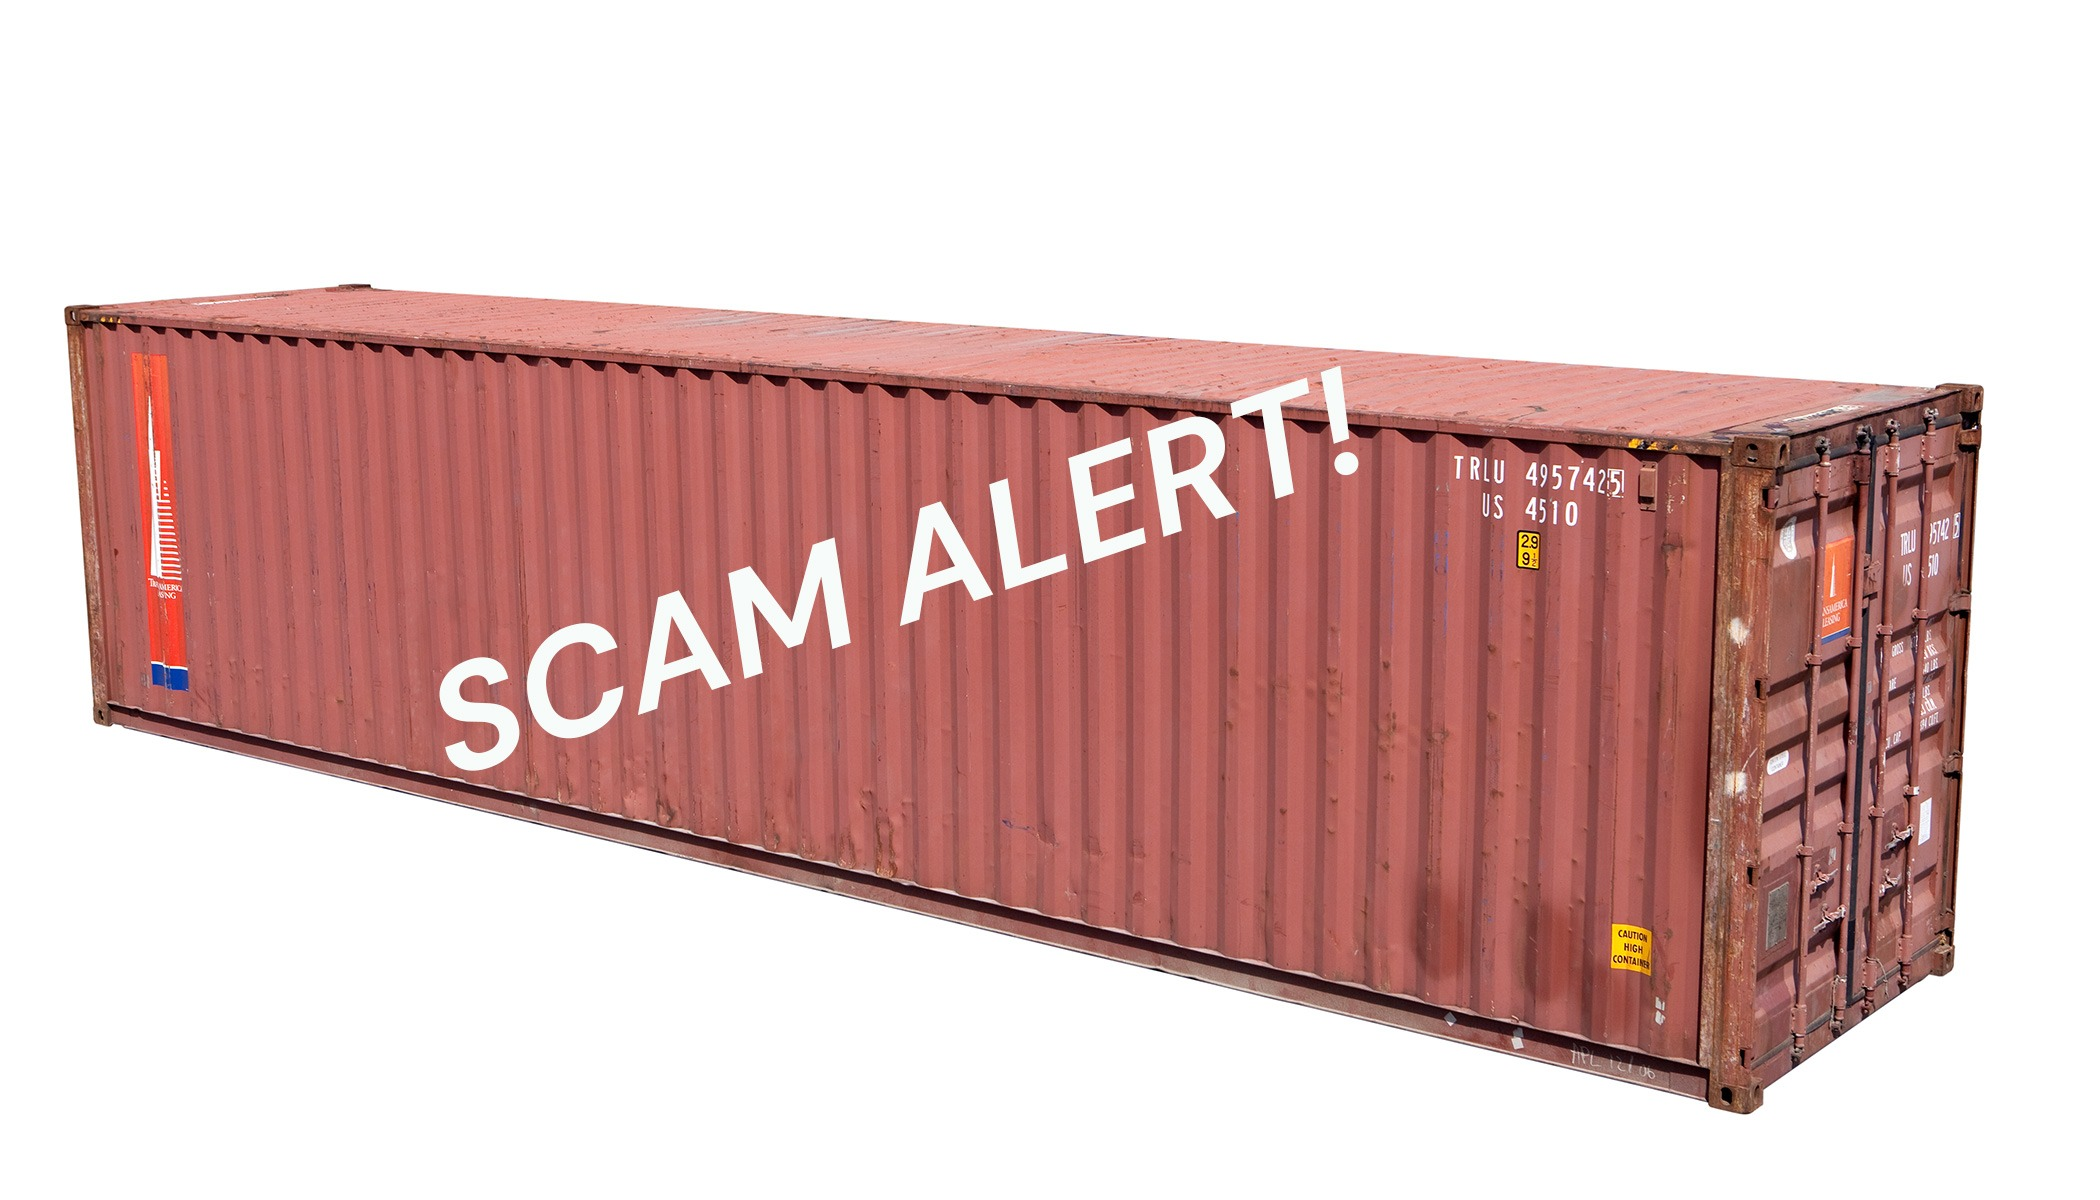 Shipping Container Sales: How to Spot a Scam